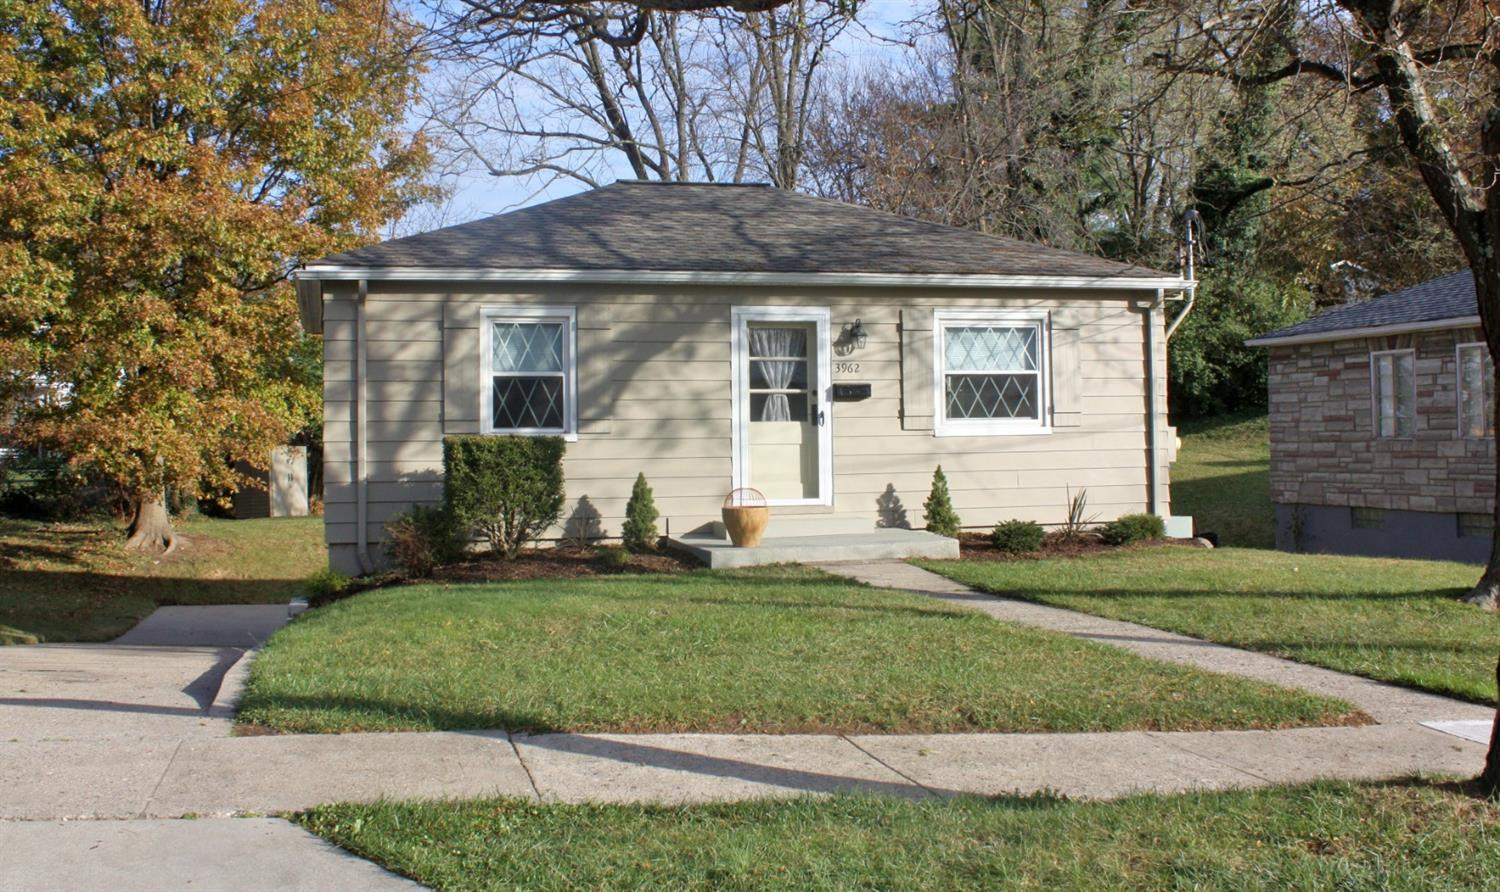 3962 Carrie Ave Cheviot, OH